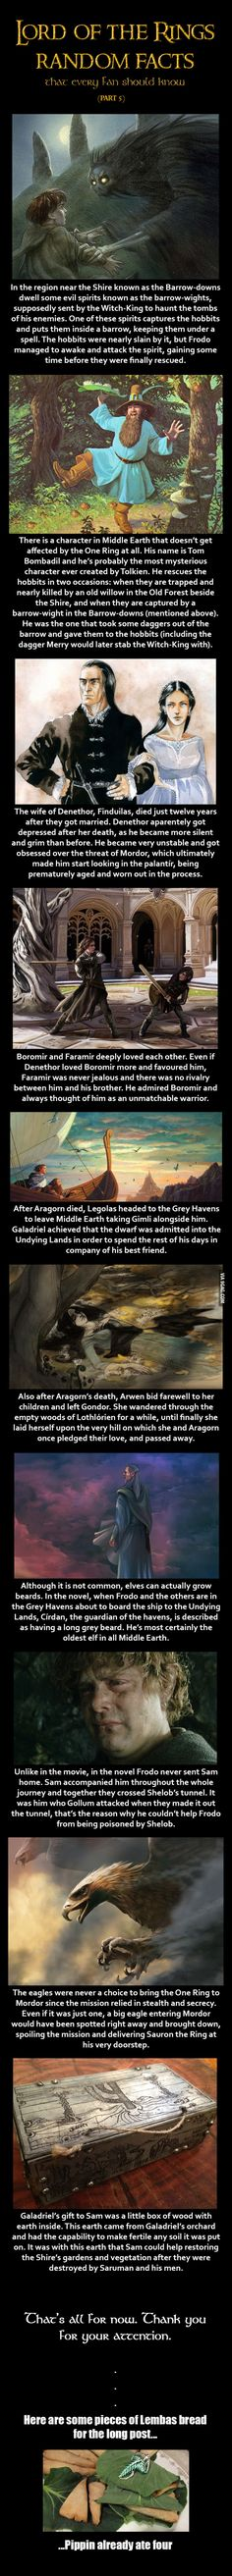 847 Best Of Middle Earth And Narnia Images In 2019 Middle Earth